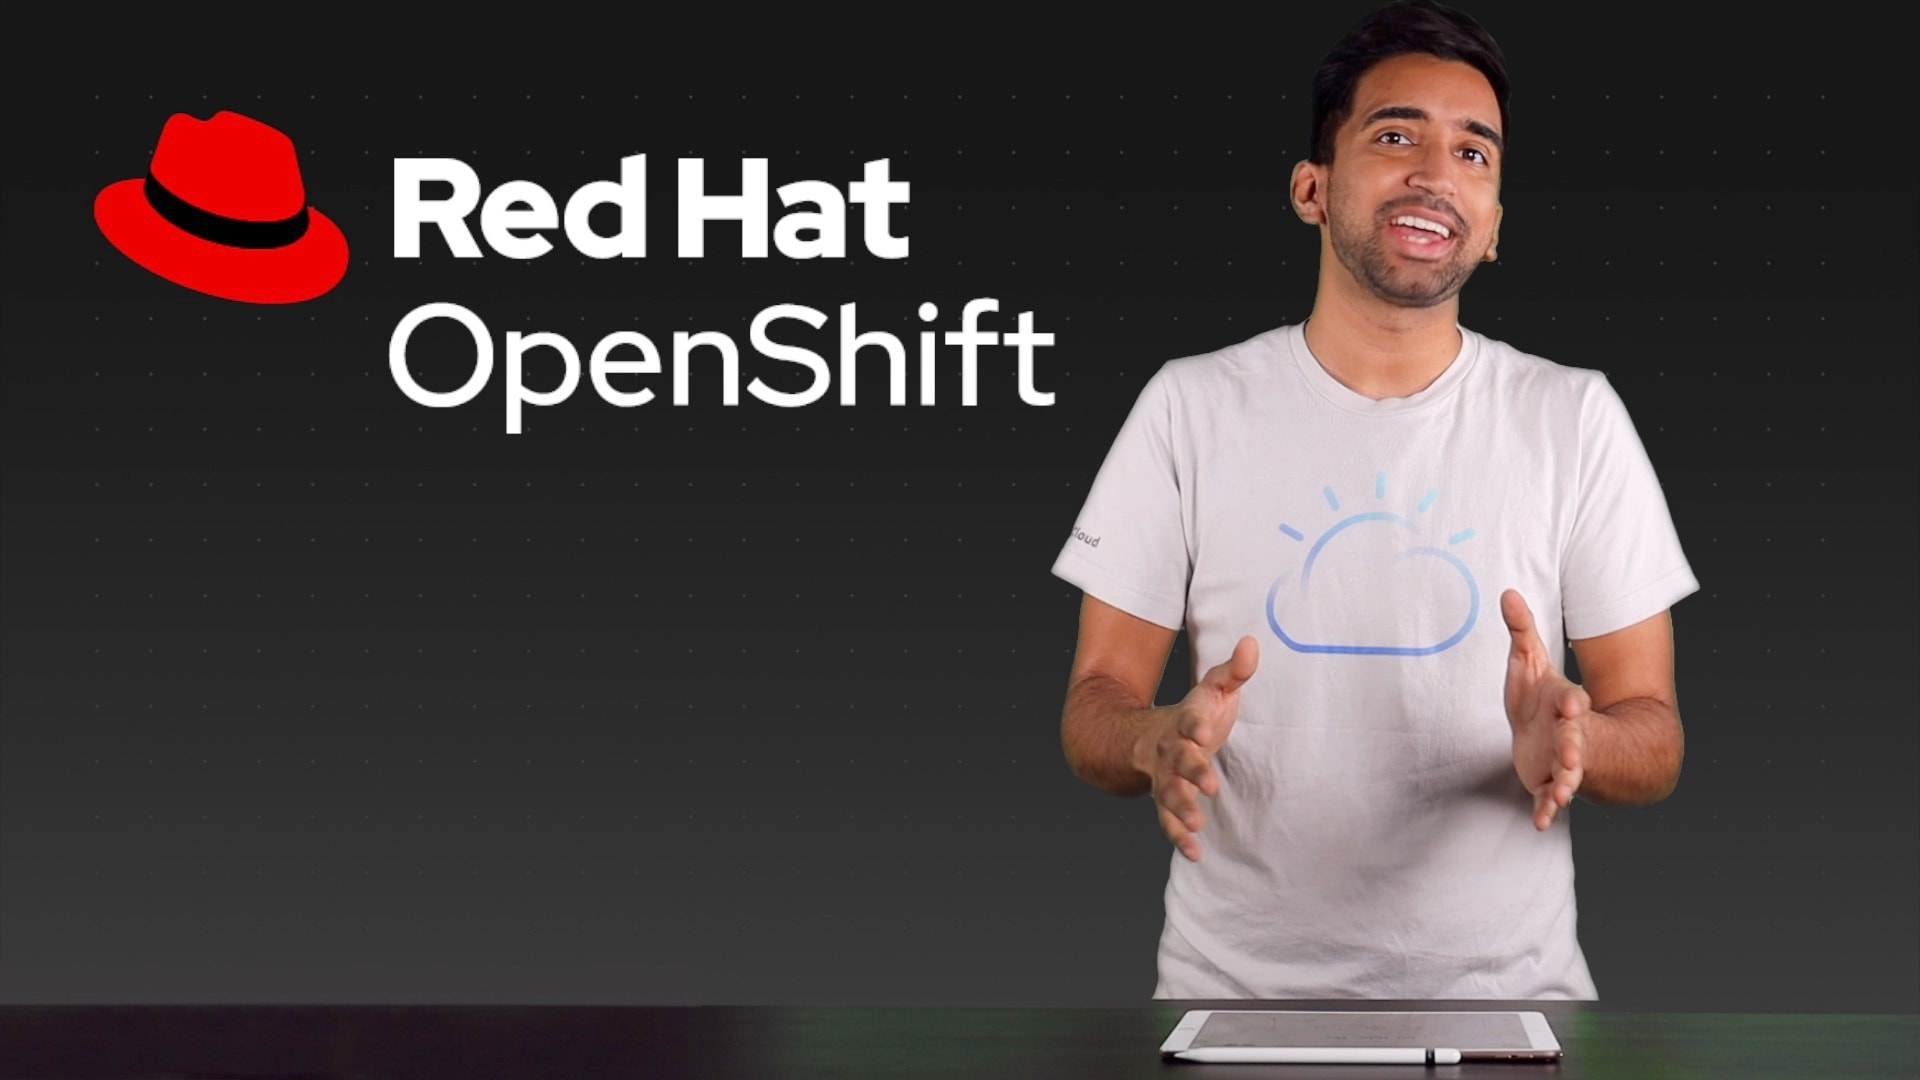 What's new in OpenShift 4?